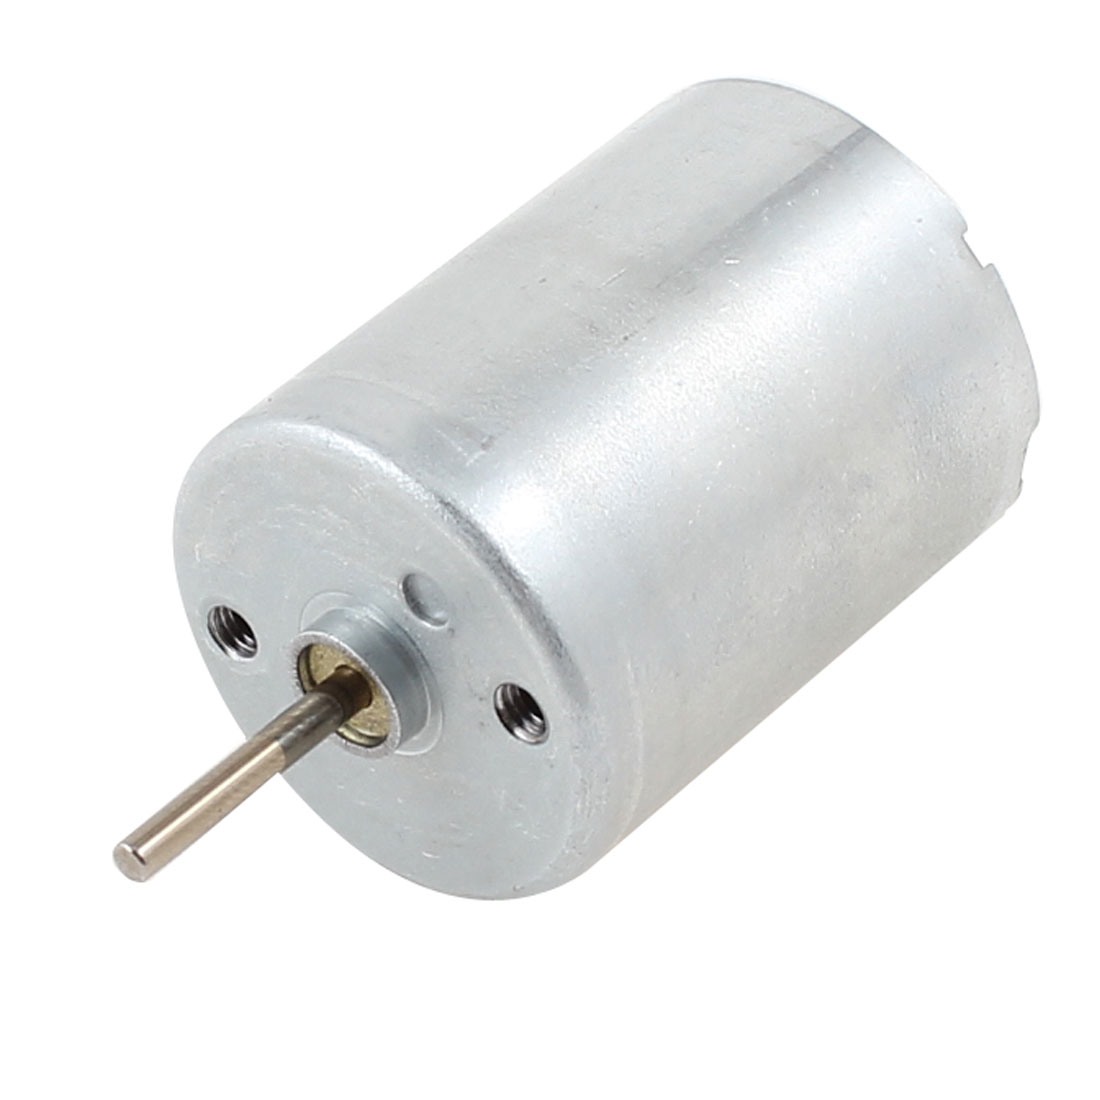 DC 12V 2mmx15mm Shaft 3050RPM Low Speed High Torque Motor for Aircraft Model